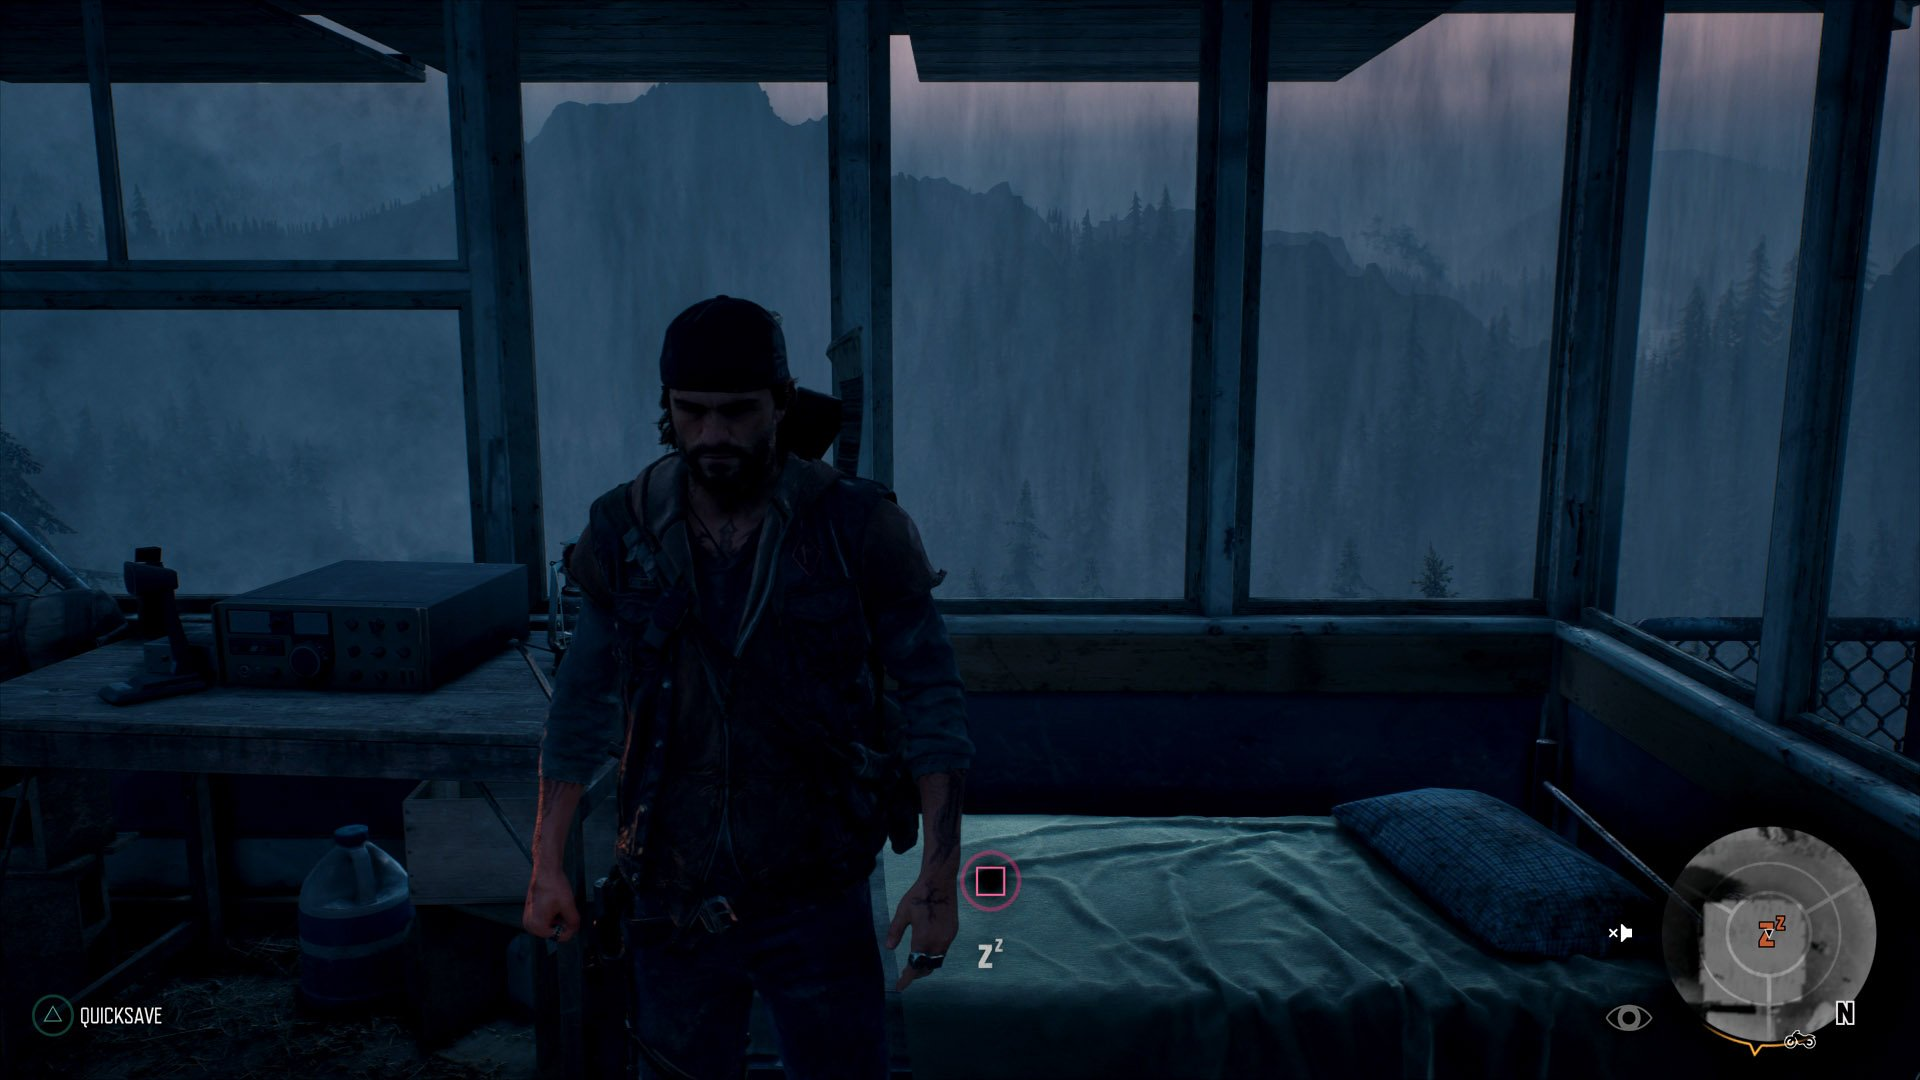 How to Sleep and Pass Time in Days Gone